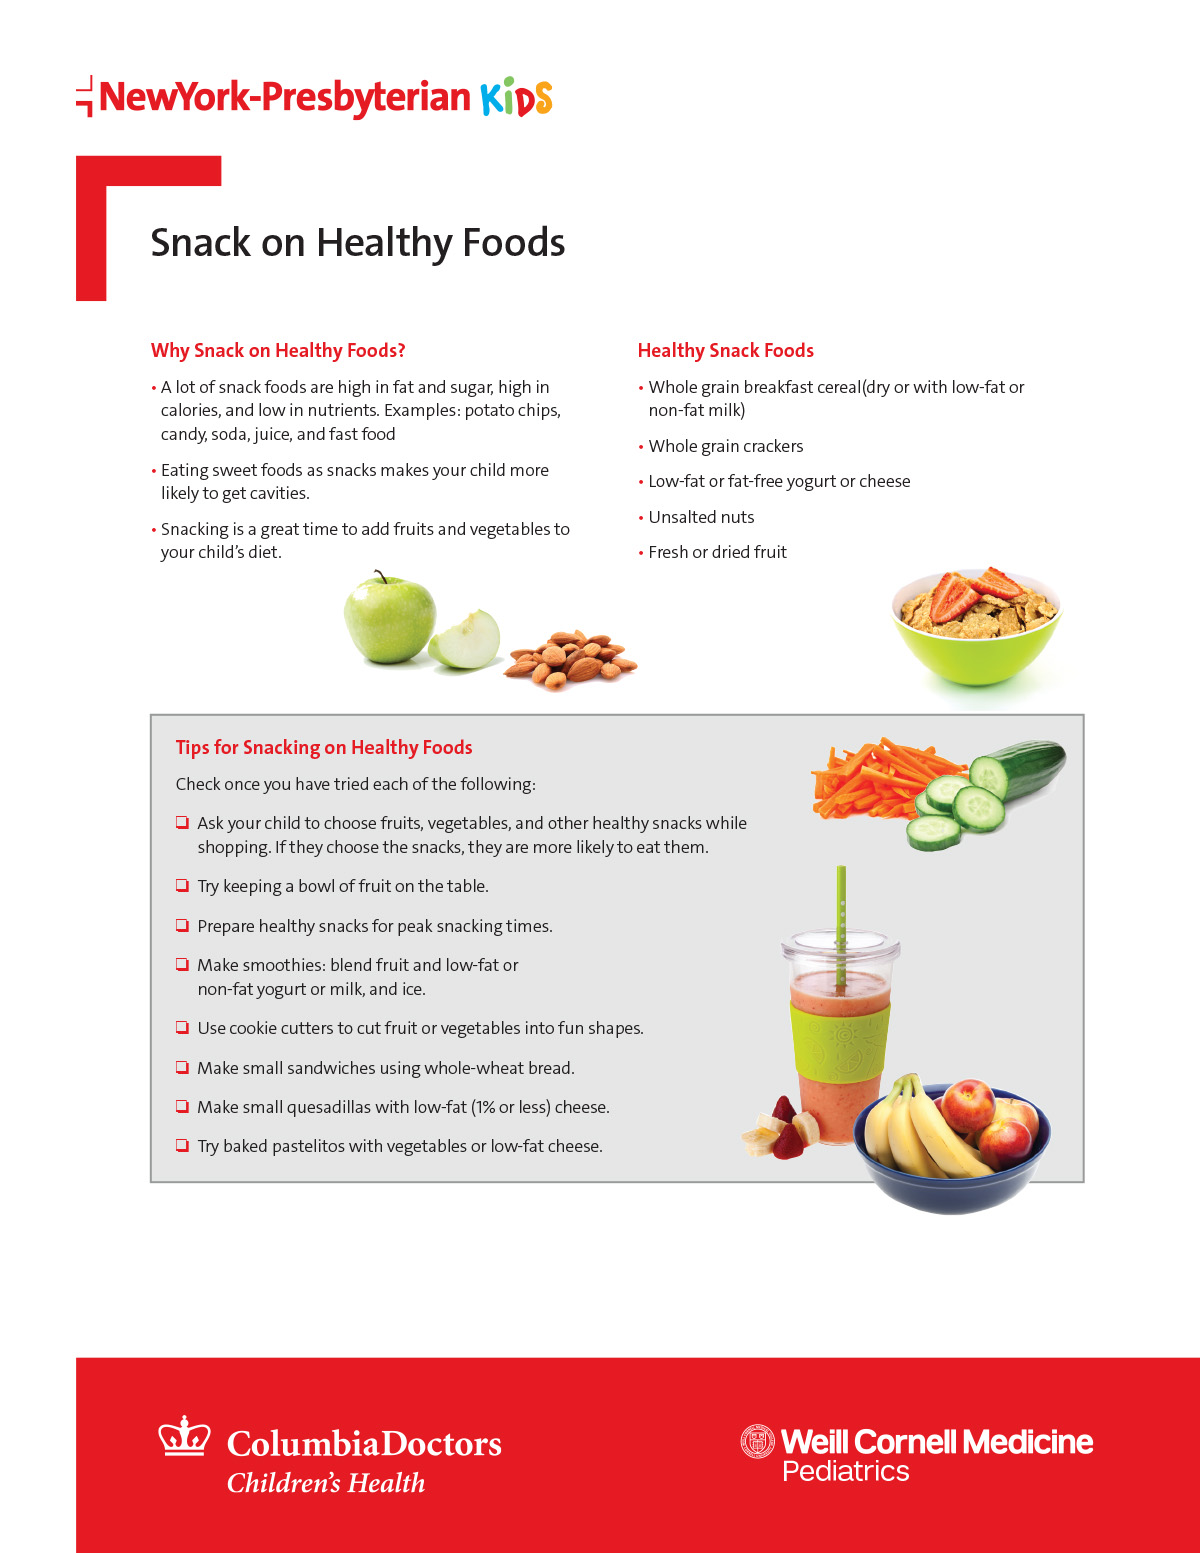 Snack on Healthy Foods